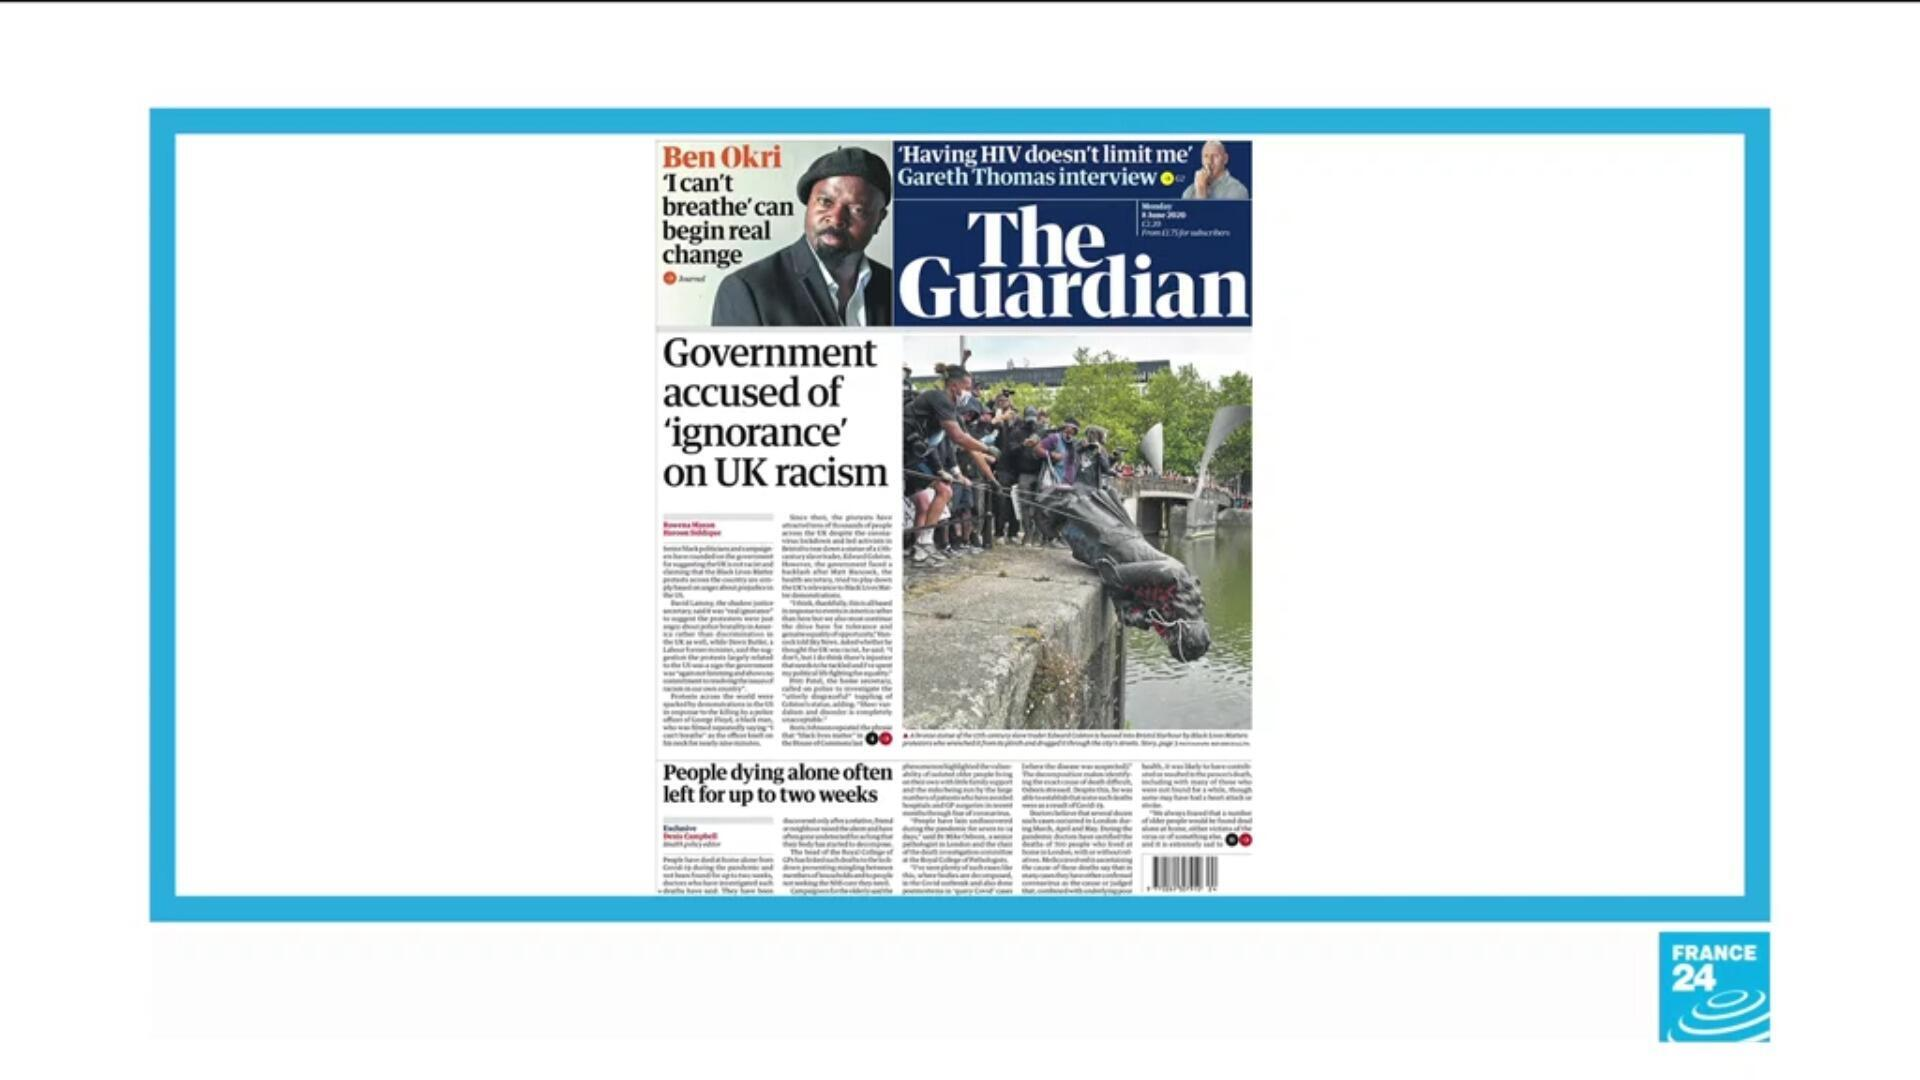 IN THE PAPERS 0608